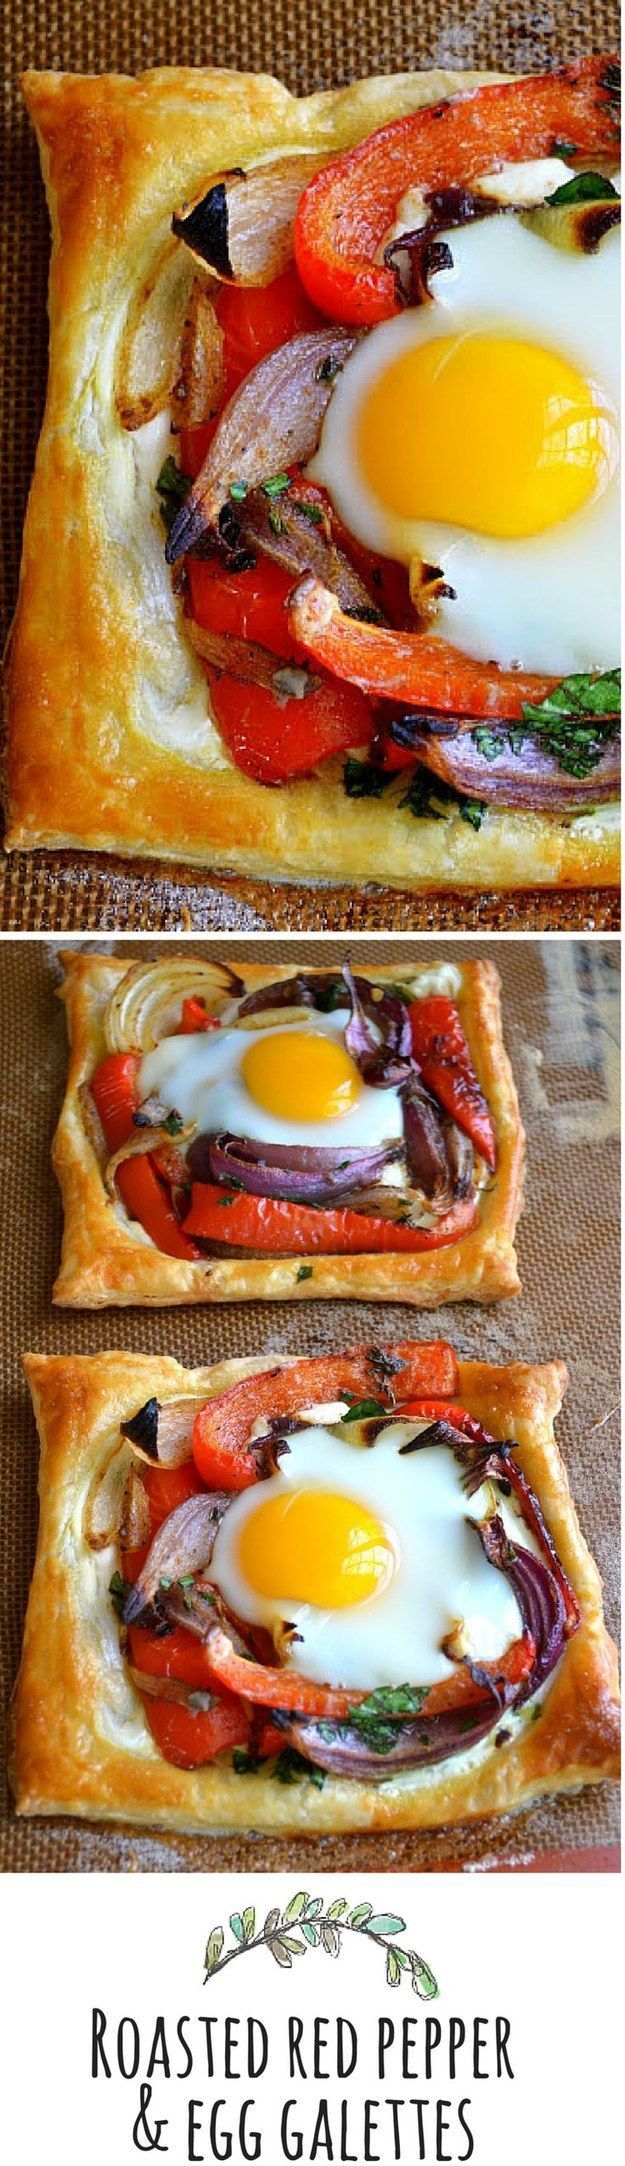 This looks suspiciously like pizza, which would be the worst way to start your day.